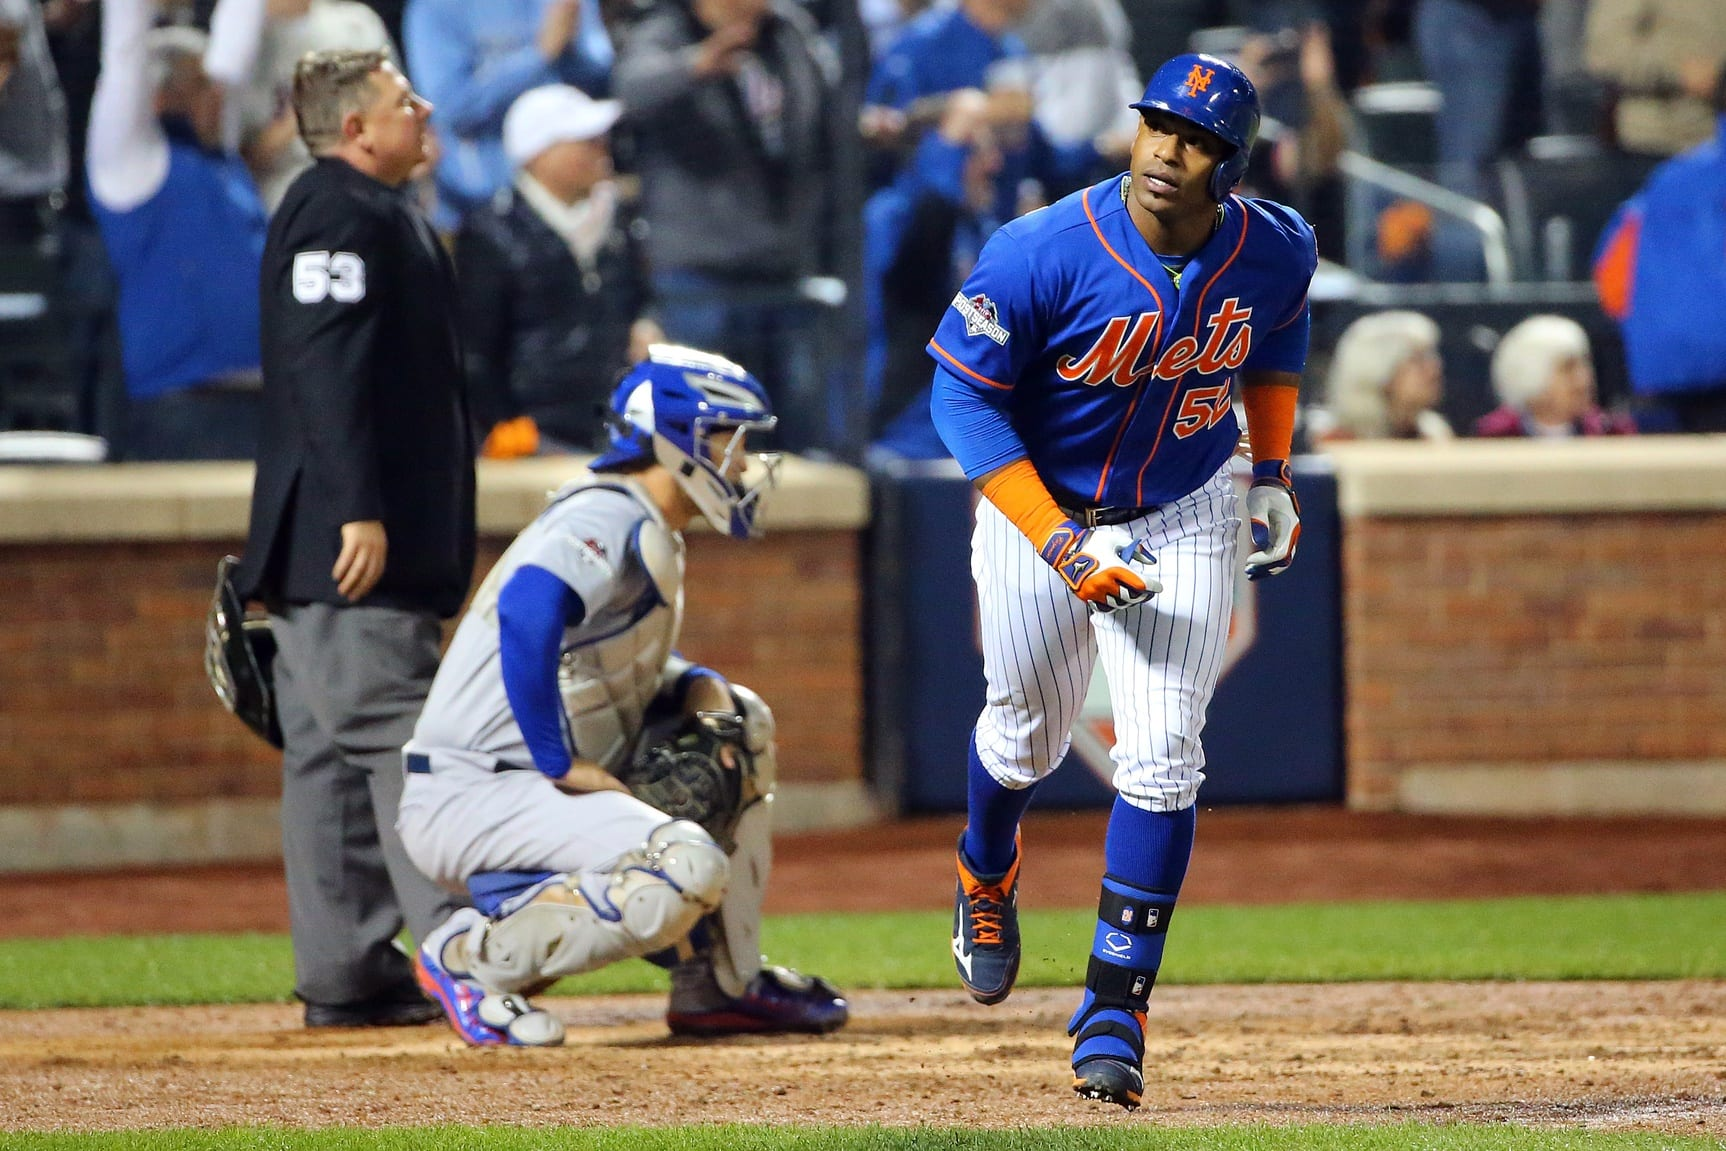 Nlds: Yoenis Cepsedes Says Mets Decided Against Retaliating